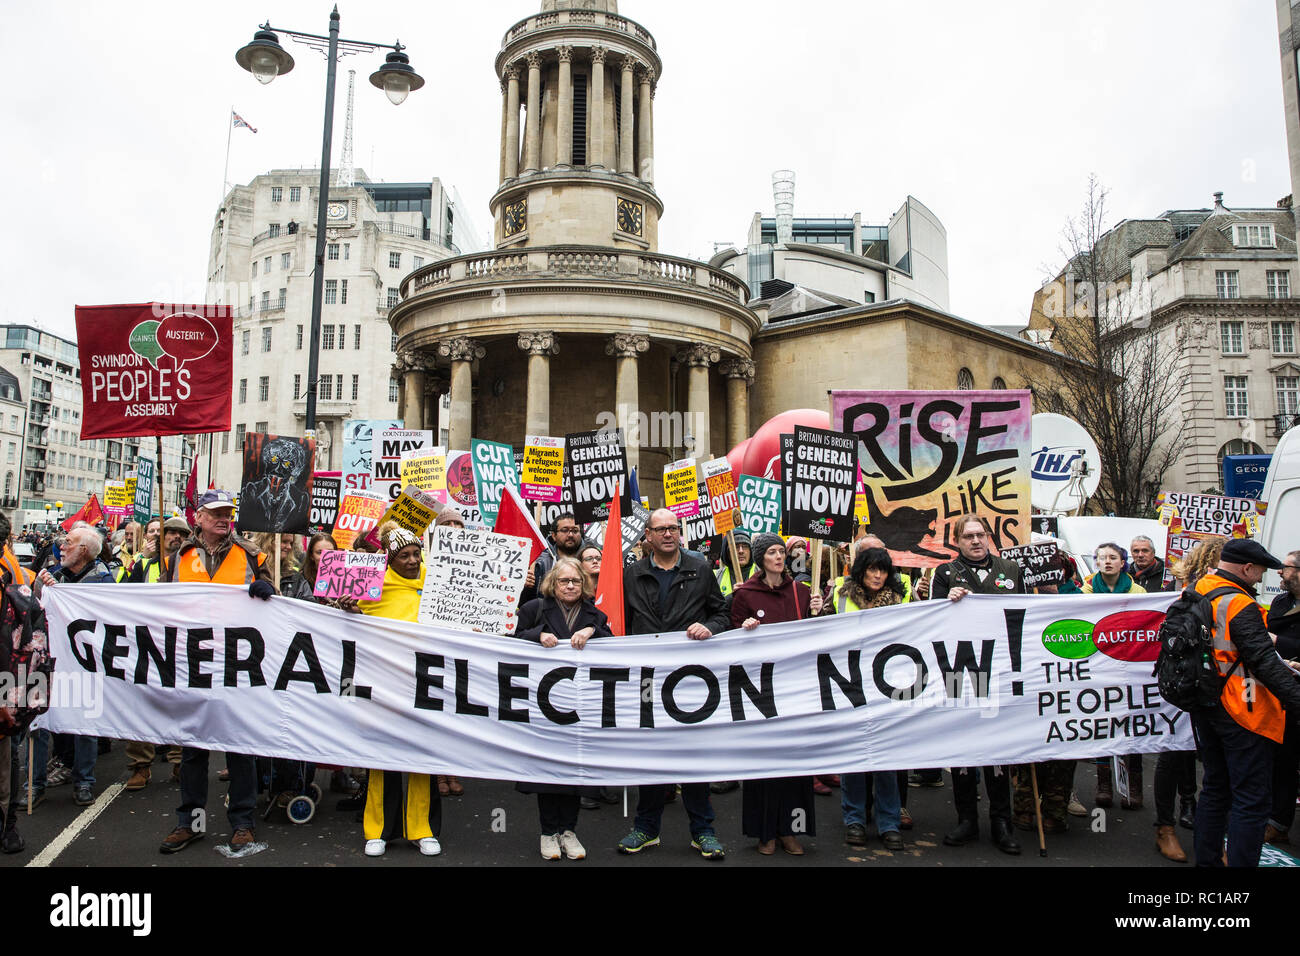 London, UK. 12th January, 2019. Hundreds of protesters take part in a 'Britain is Broken: General Election Now' demonstration organised by the People's Assembly Against Austerity. Organisers argued that the overriding objective of working people in the UK should be to remove the Conservative Government from power through a general election regardless of their vote in the EU referendum. Credit: Mark Kerrison/Alamy Live News - Stock Image